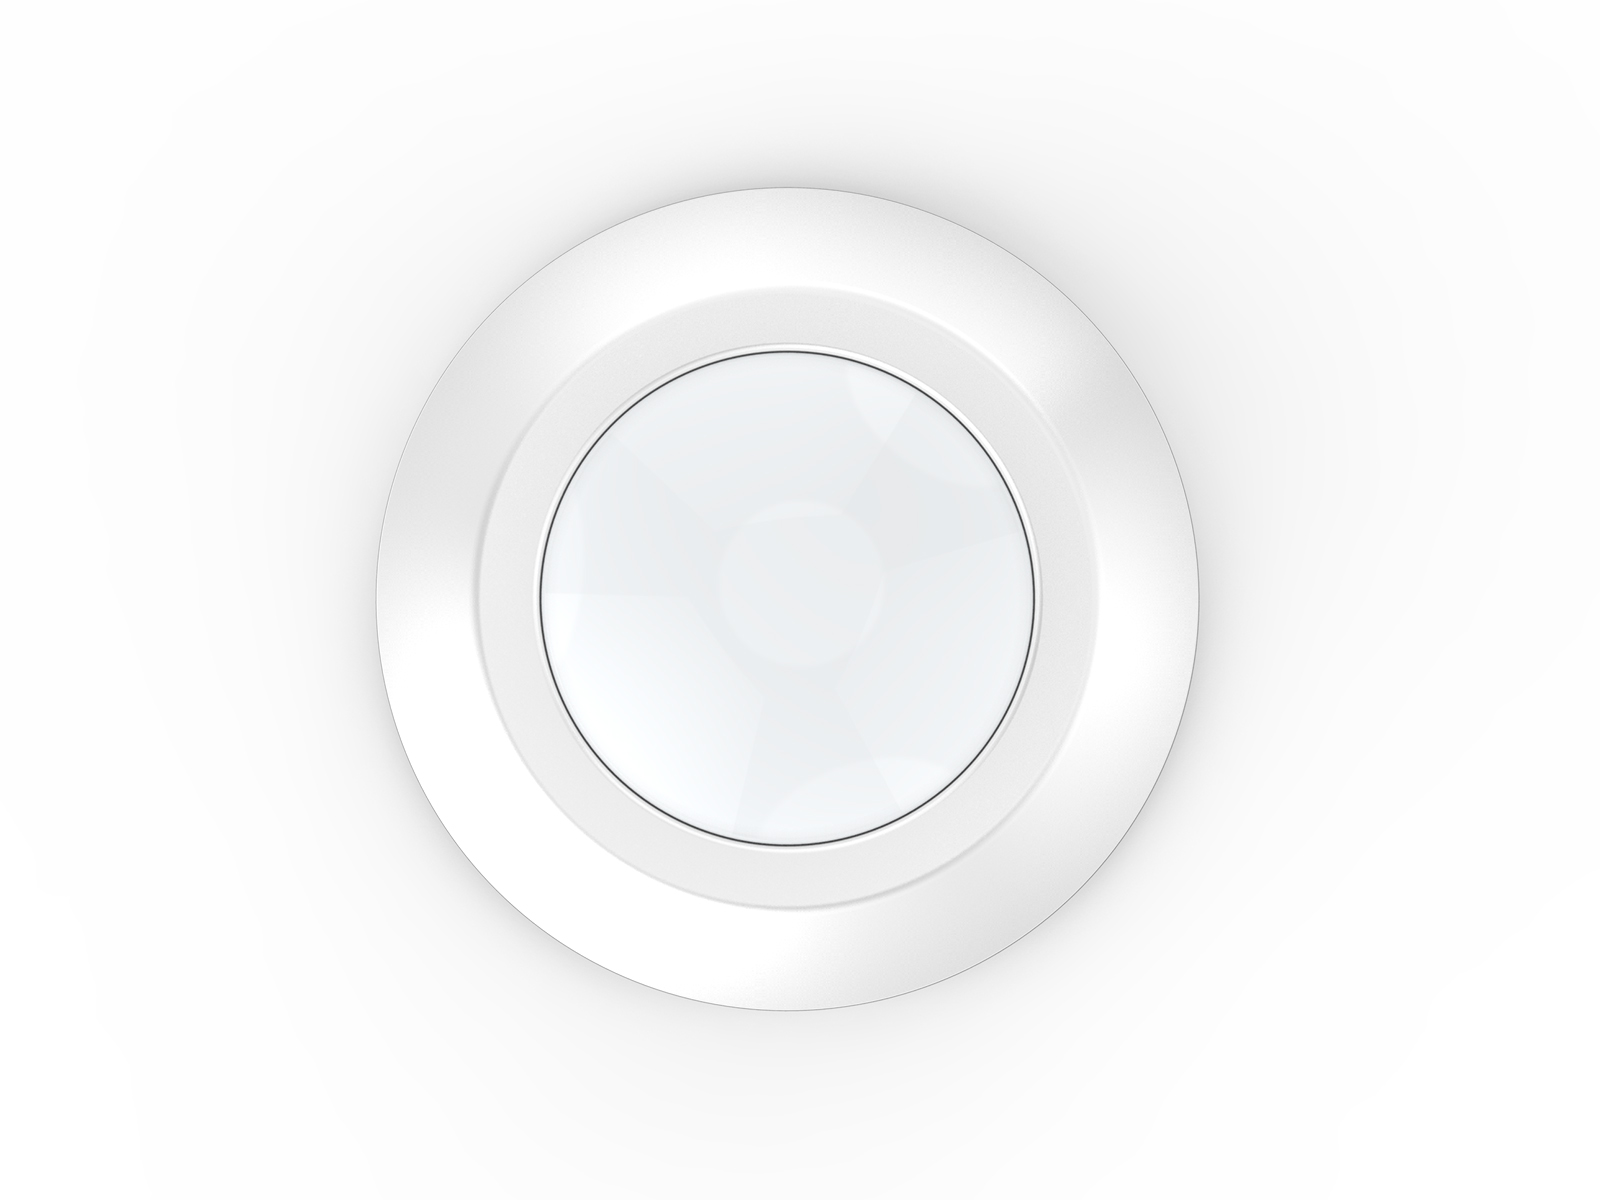 DL101 1 Round LED Downlight